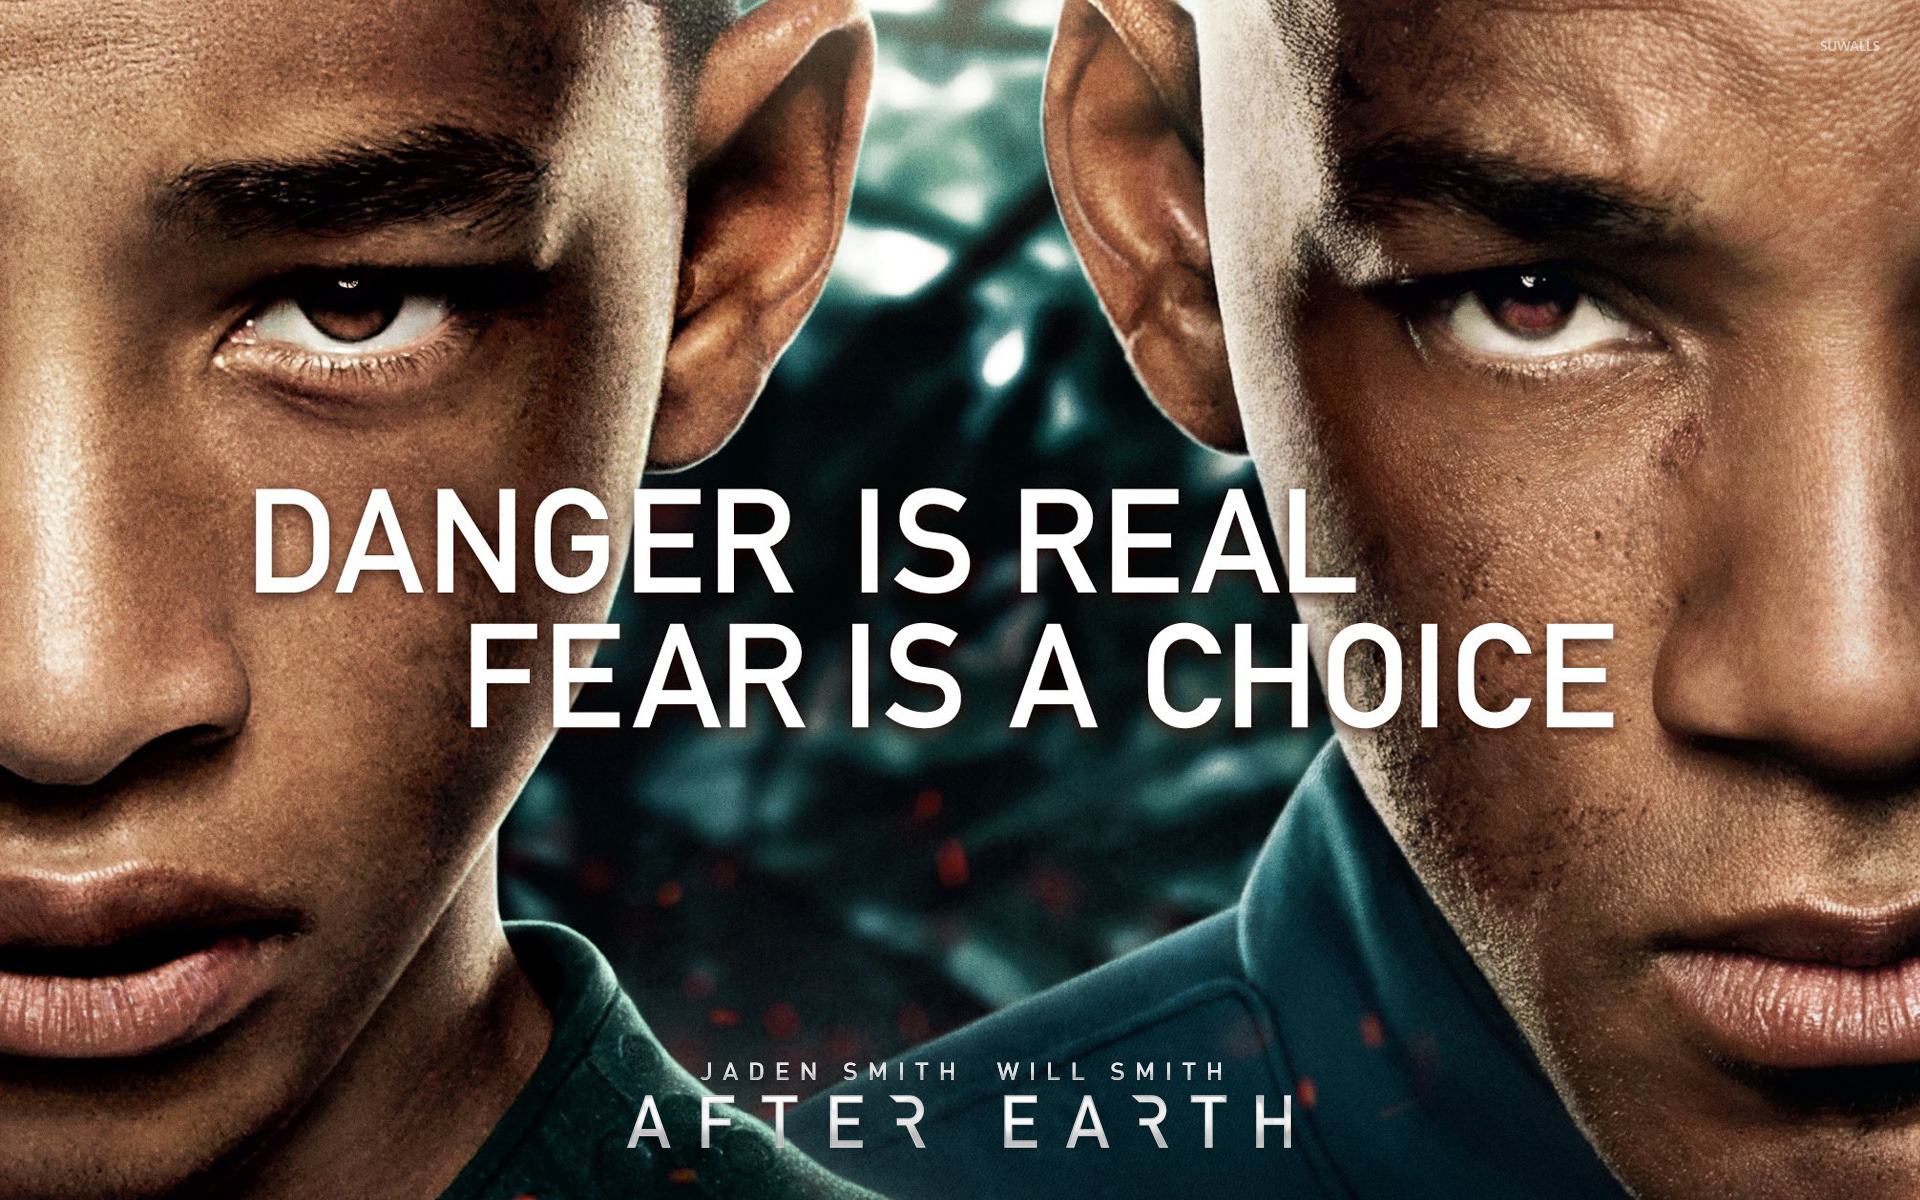 After Earth [2] wallpaper   Movie wallpapers   40044 1920x1200